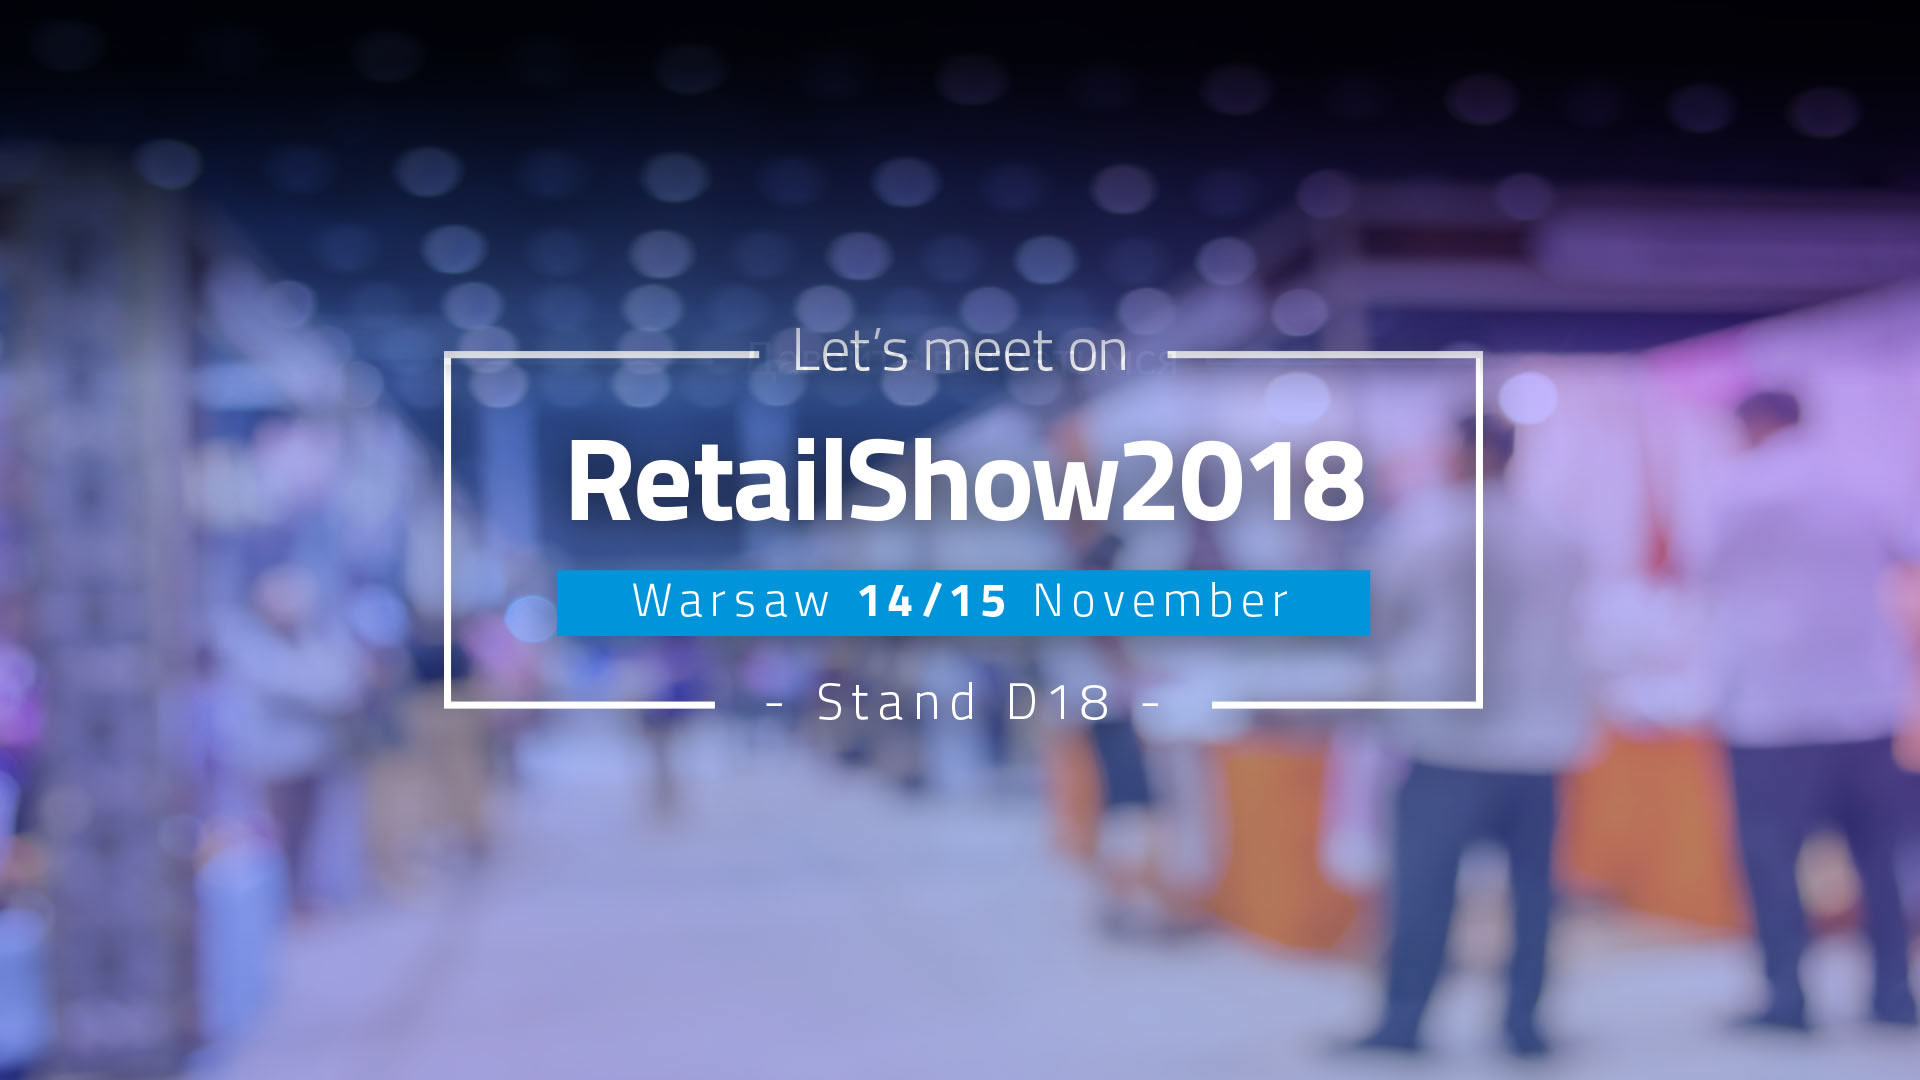 We invite you to the Retail Show 2018